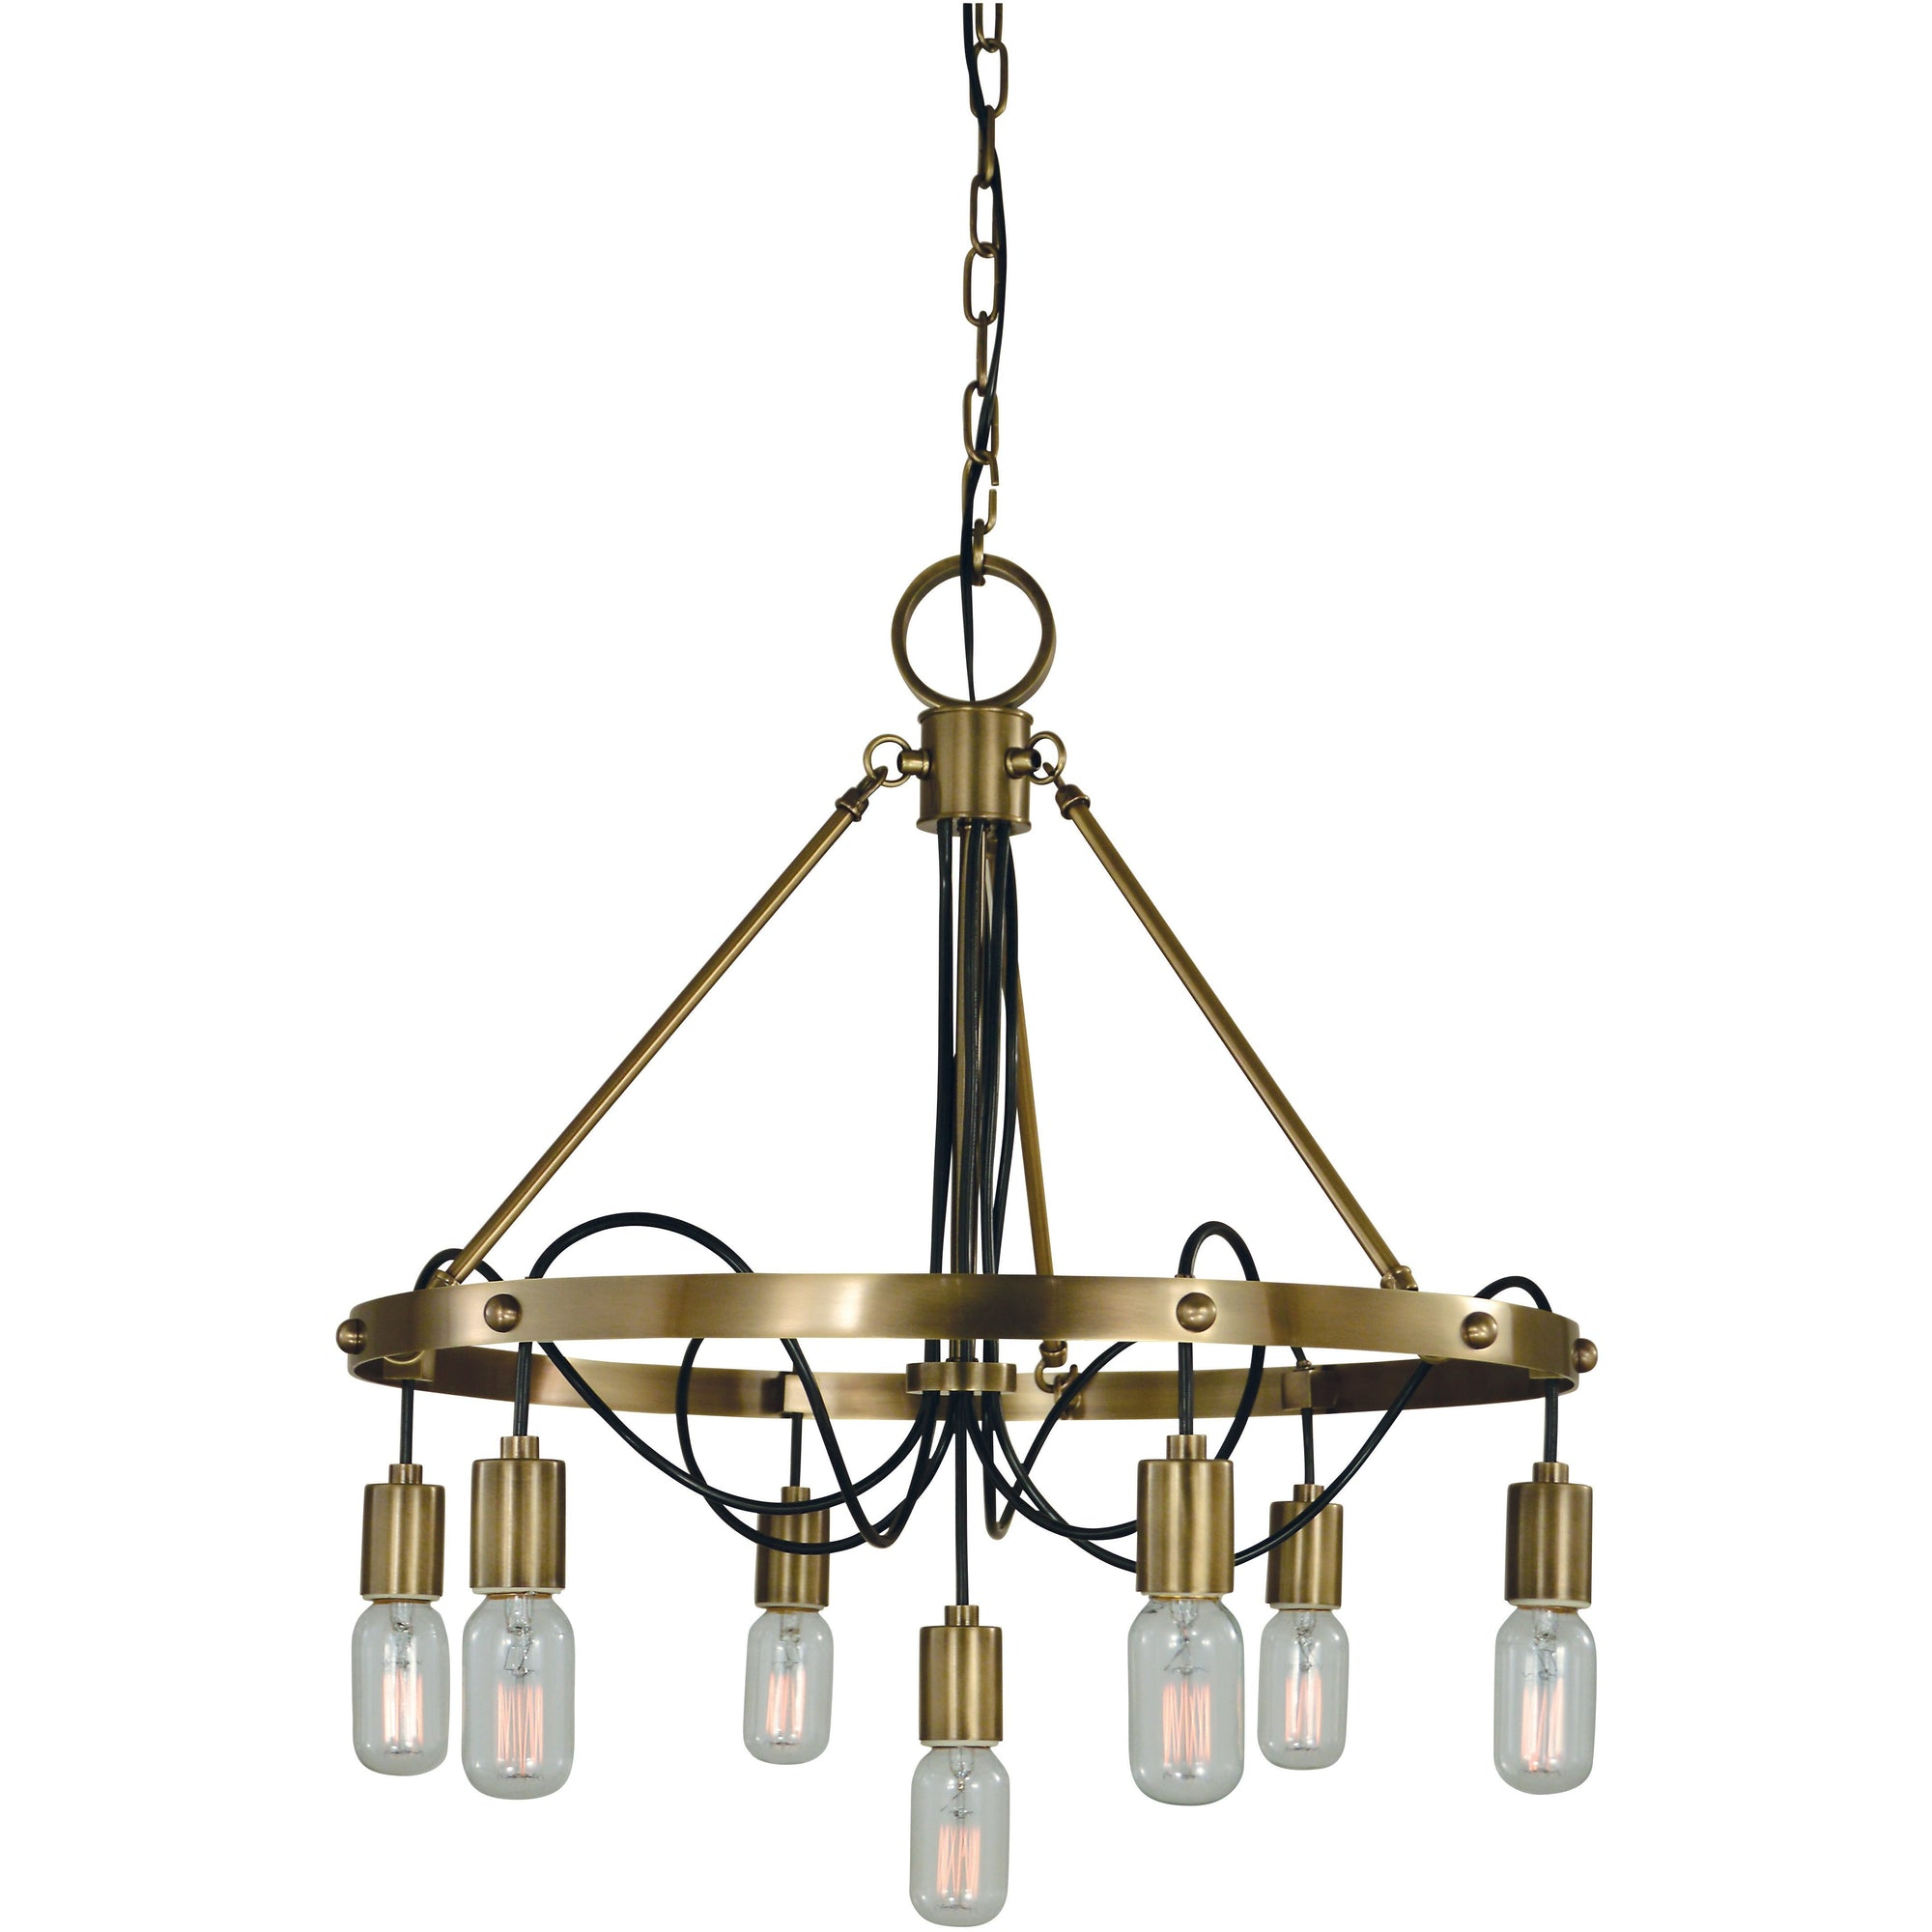 Framburg Chandeliers Antique Brass 7-Light Antique Brass Felix Dining Chandelier by Framburg 5380